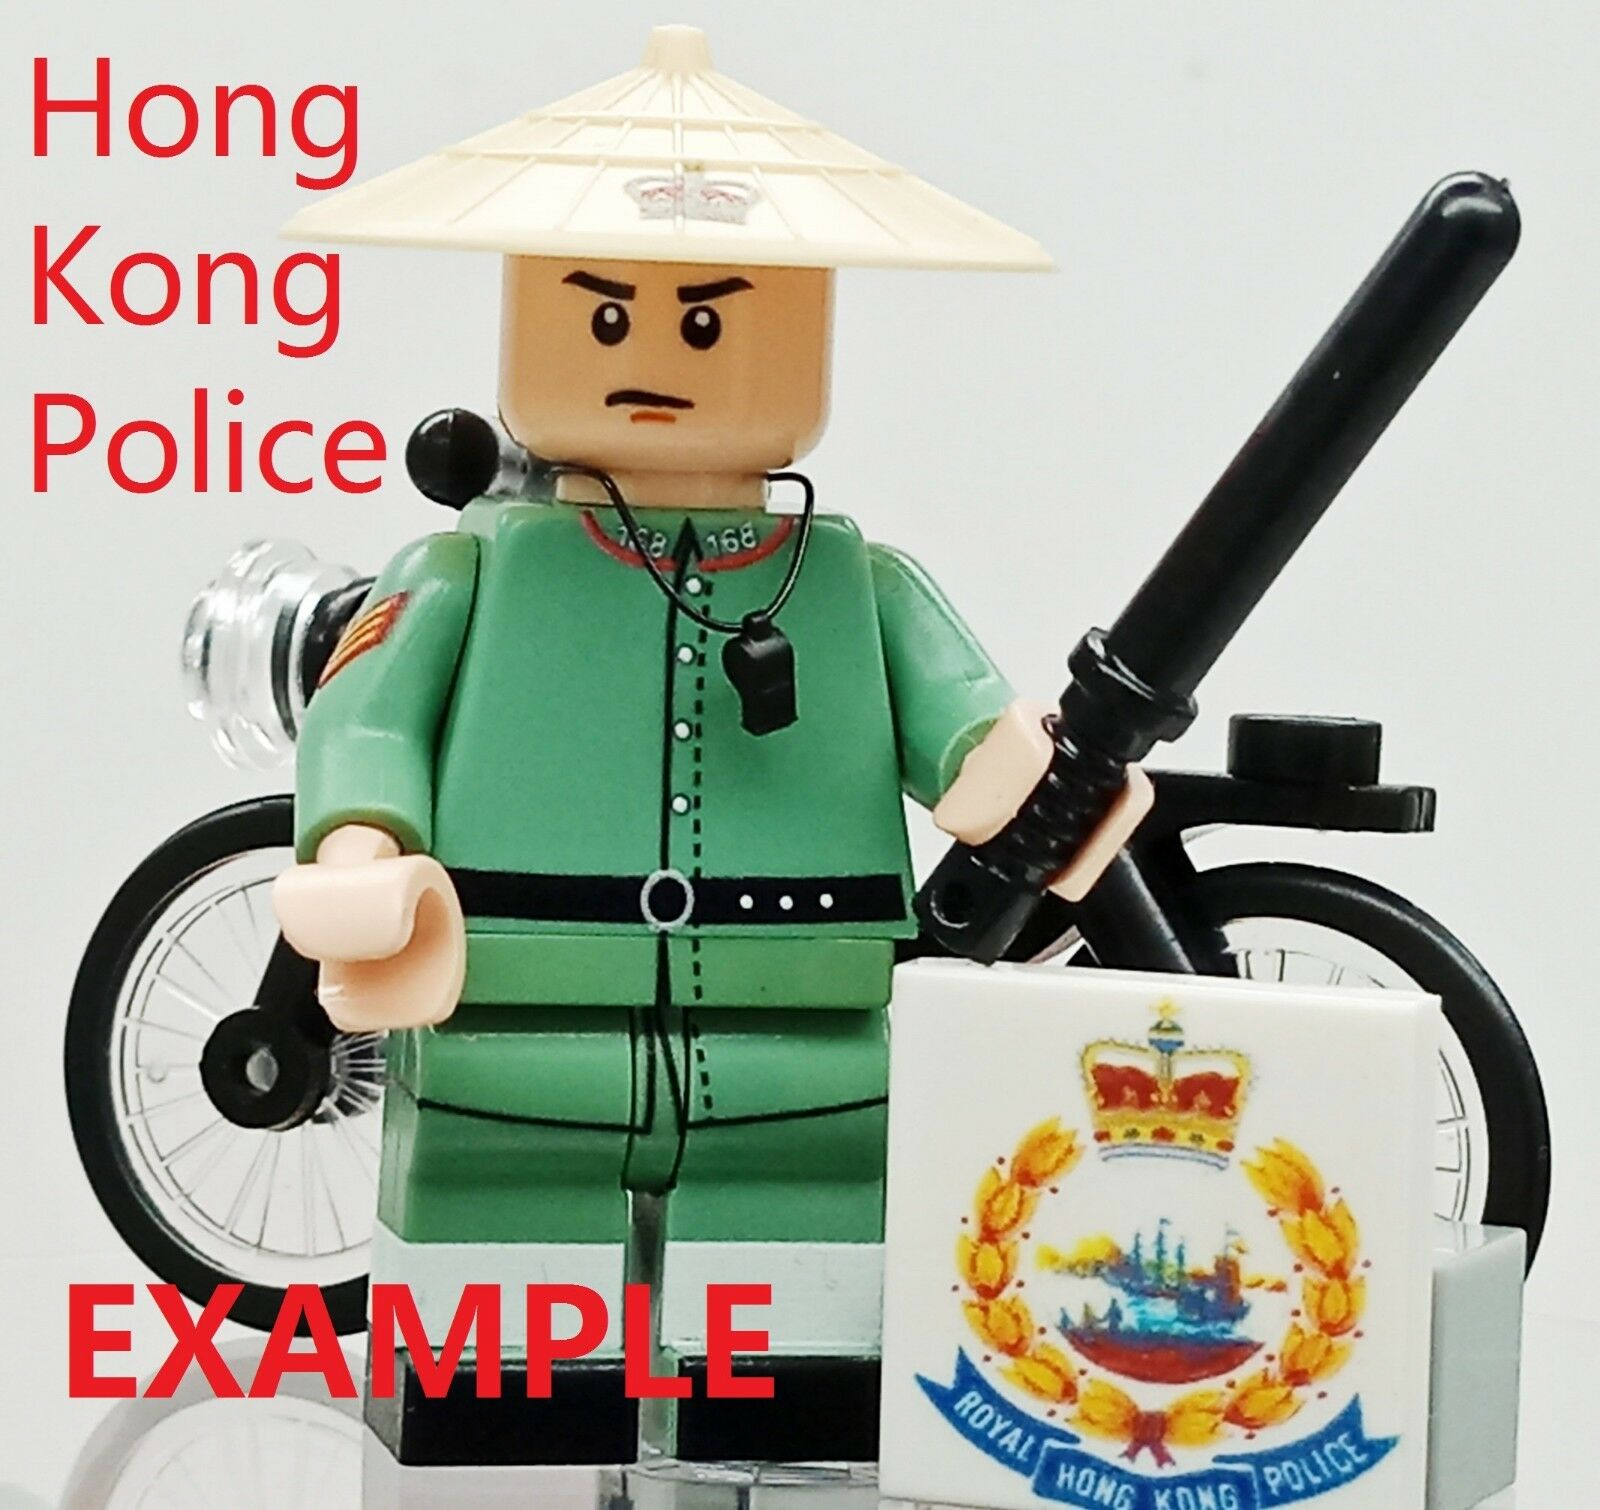 A Hong Kong Colonial Police minifigure . Printed on real lego minifig